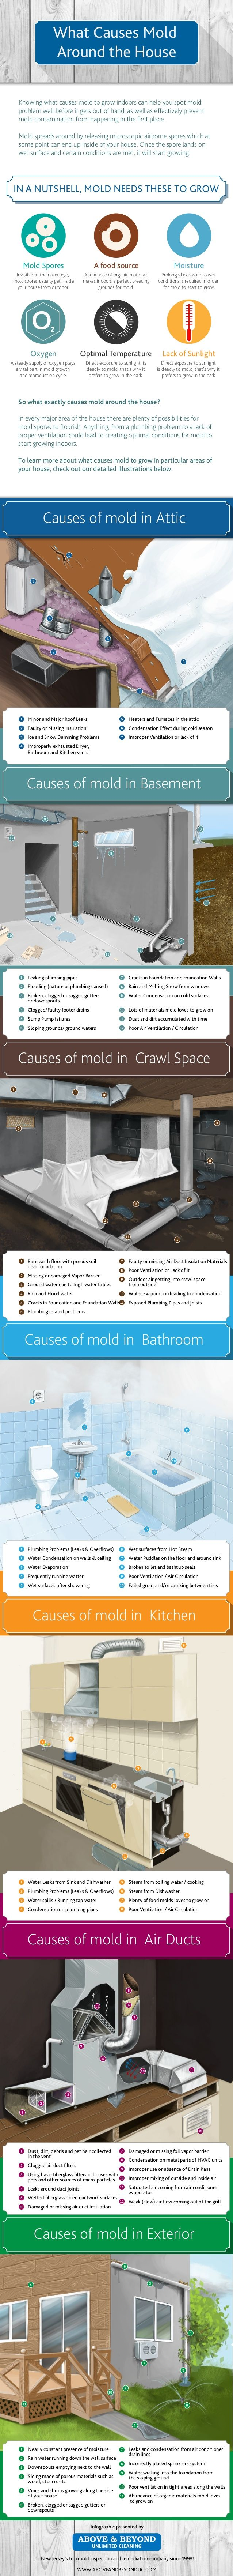 Causes of mold in Air Ducts Causes of mold in Exterior Causes of mold in Bathroom Causes of mold in Kitchen Bare earth floo...